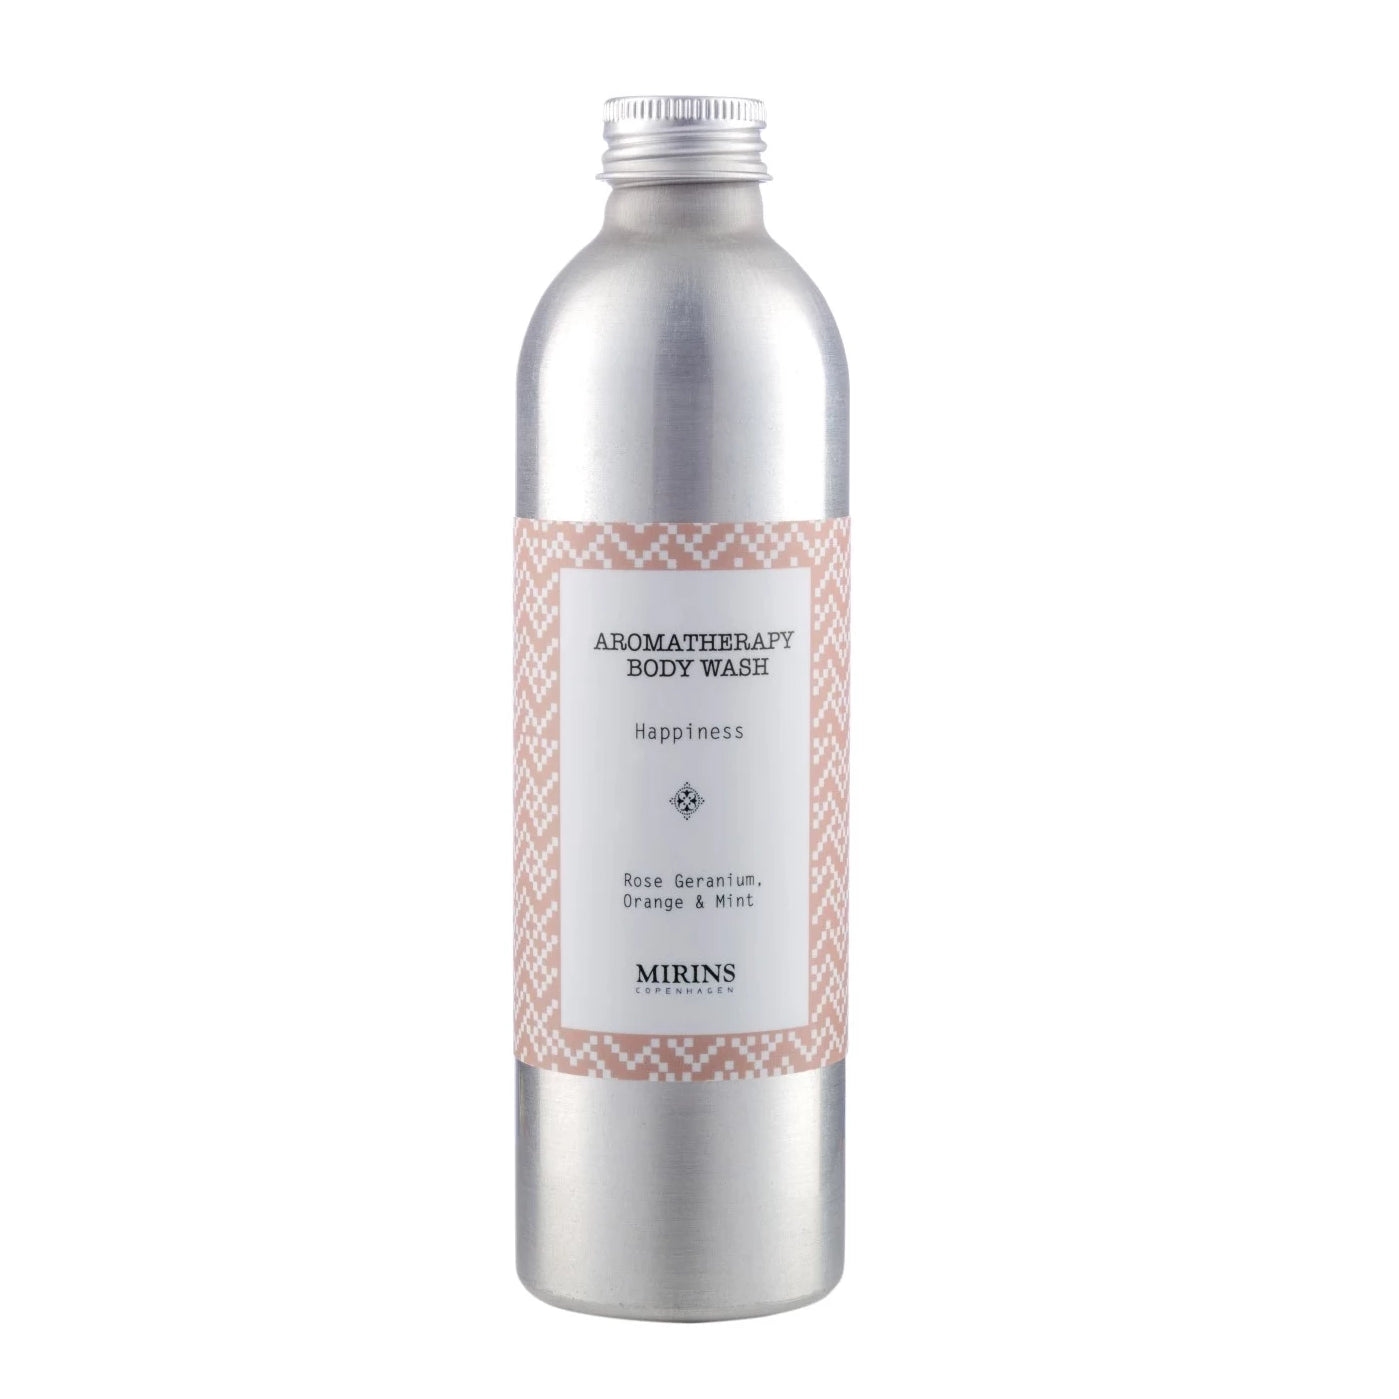 Rose Geranium, Orange & Mint Body Wash - The Weekly Shop | Plastic Free Online Shop